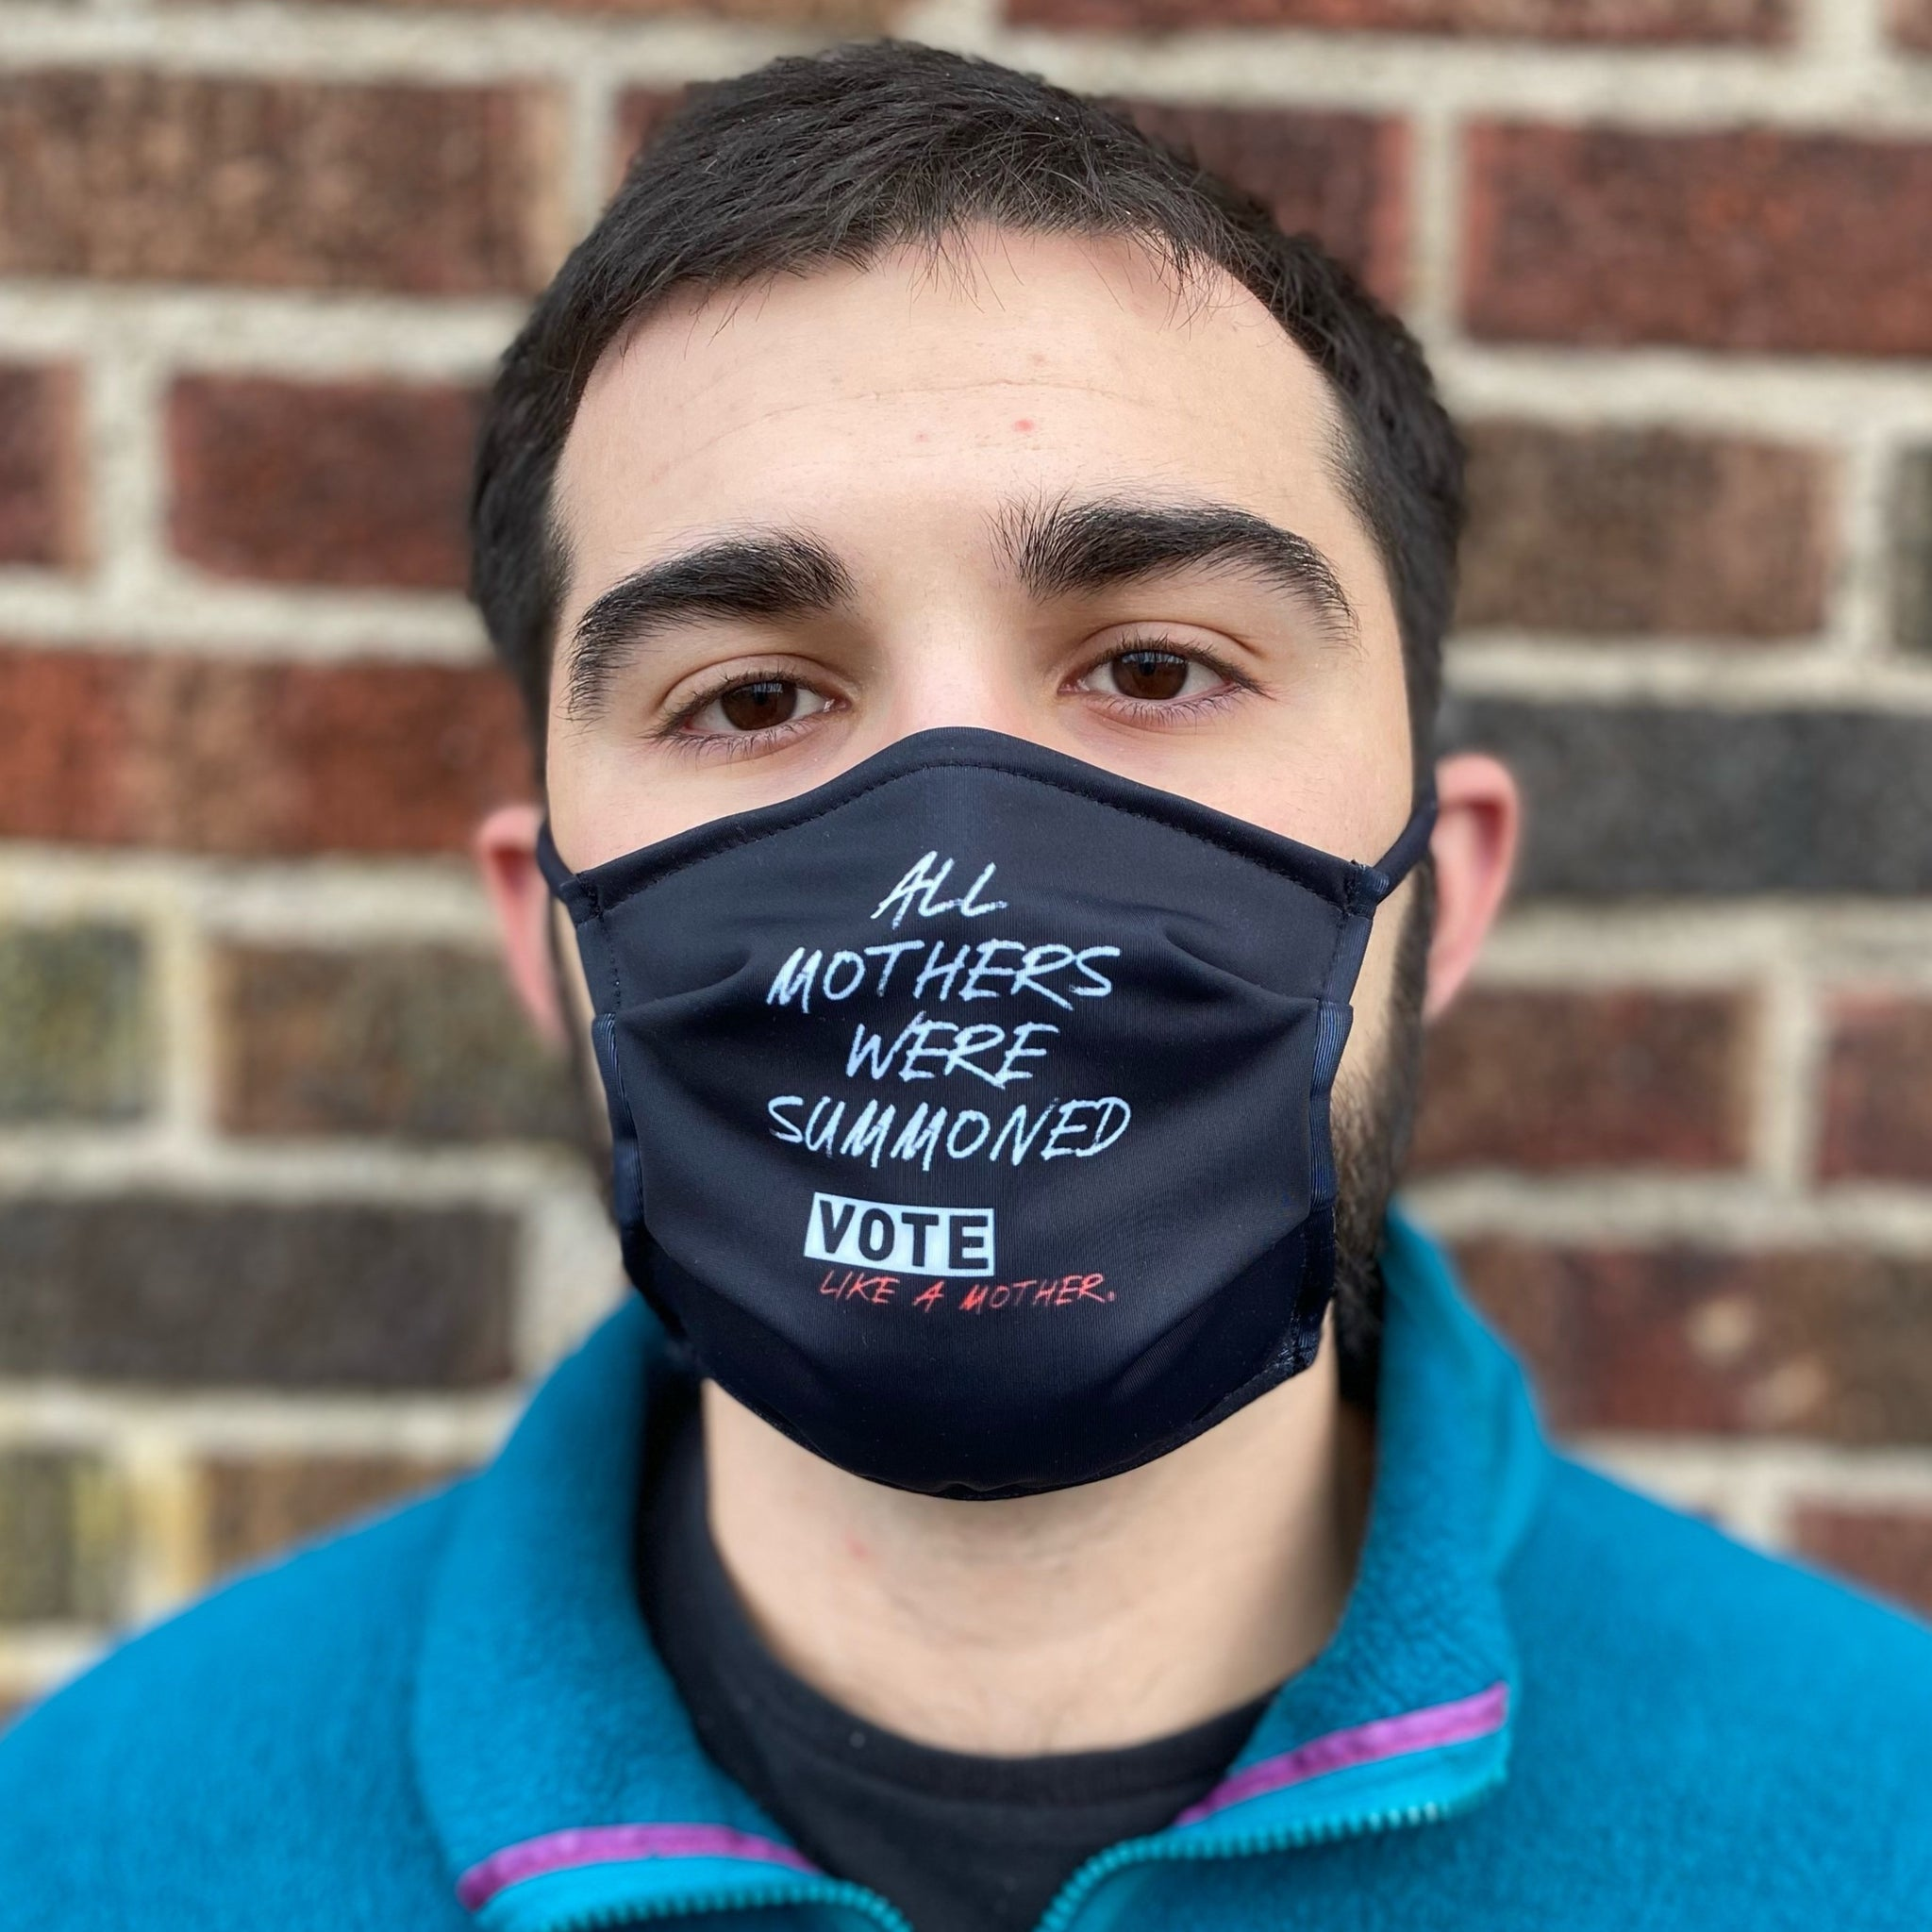 "A model with short hair and a beard sports the VLAM Summoned Mask which has a black background and white text that reads ""All Mothers Were Summoned"". Below the text is a graphic that says Vote Like a Mother. The person is wearing a teal fleece jacket zipped up over a black t-shirt and they stare into the camera calmly."